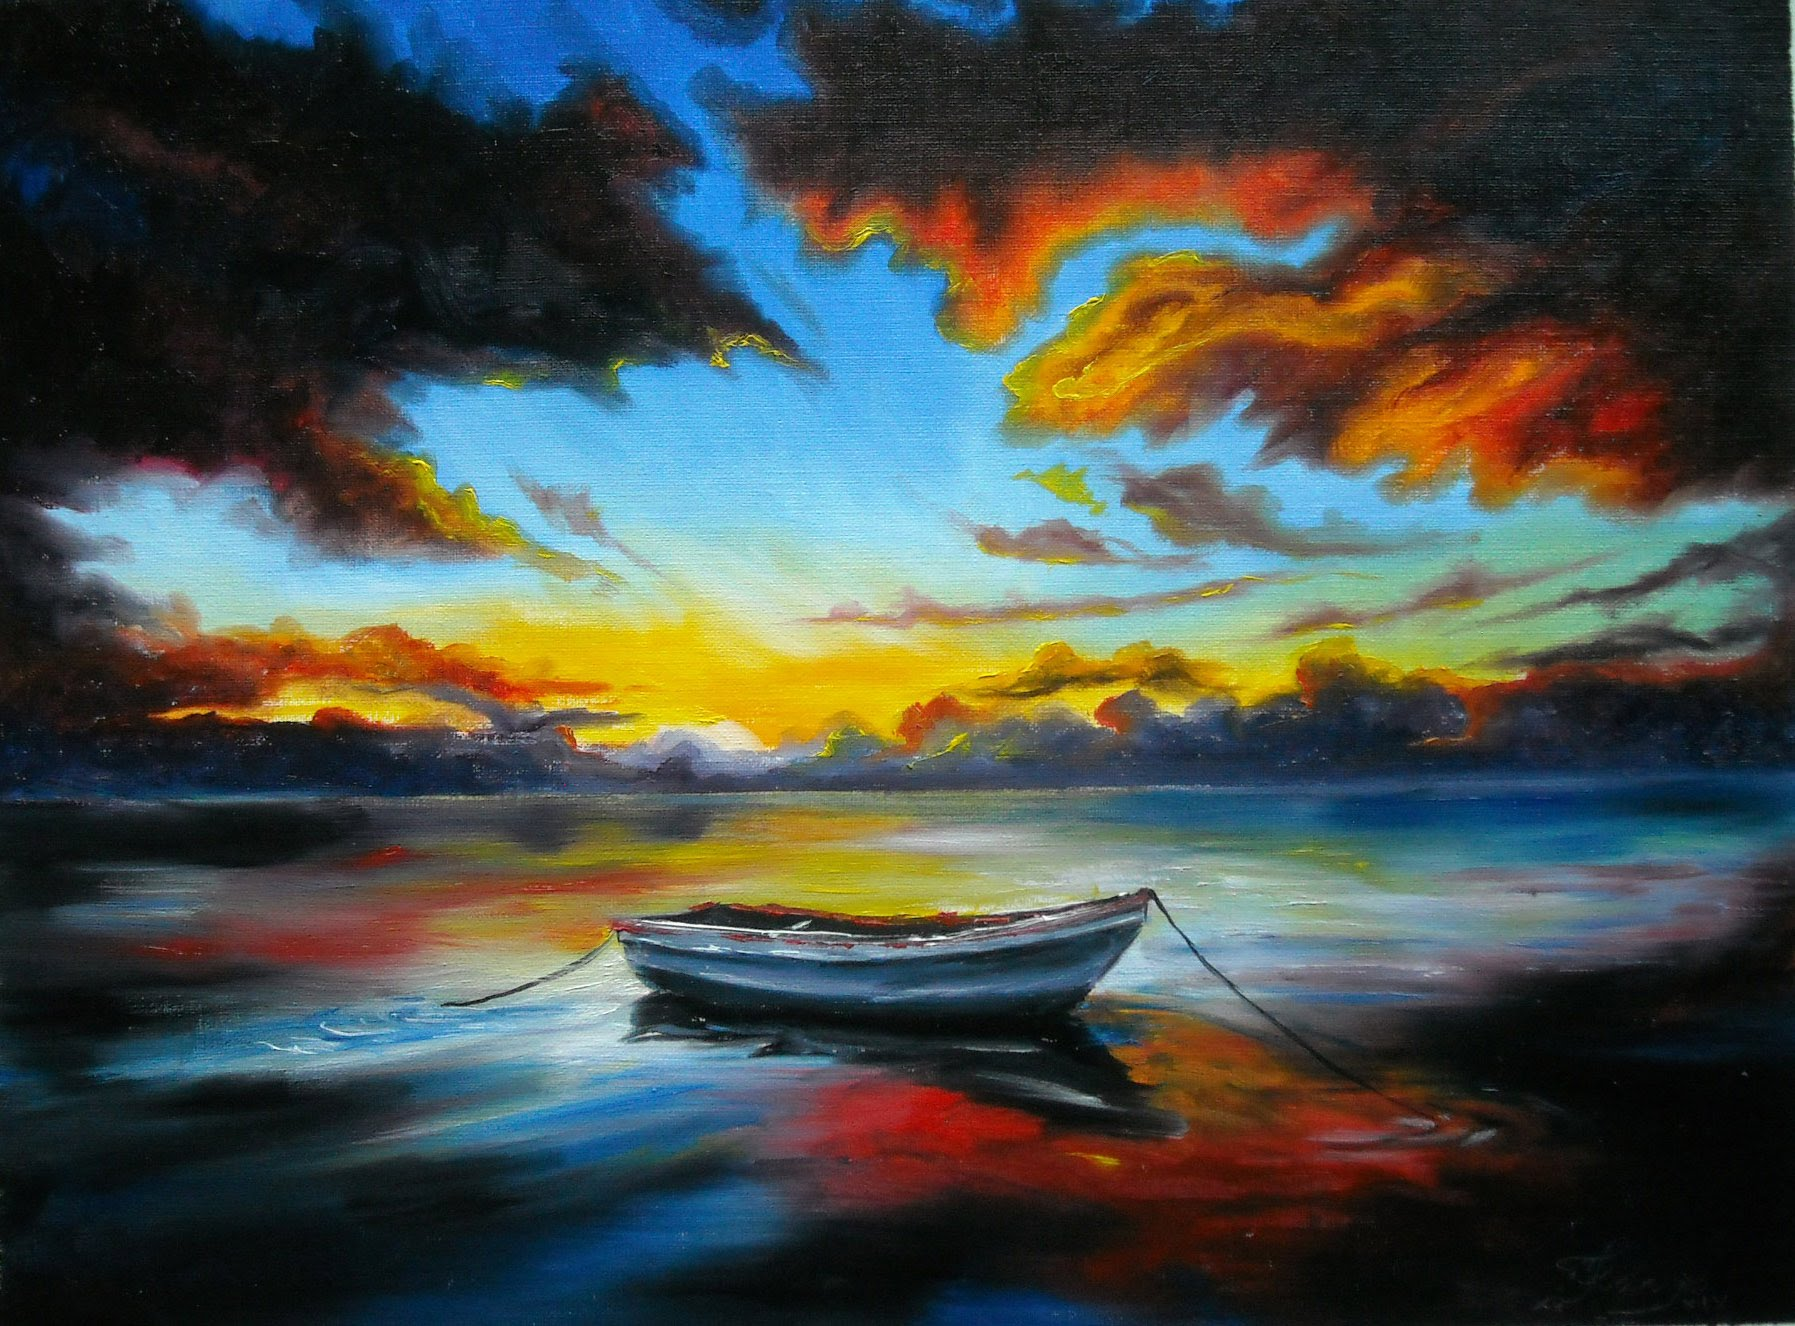 Oil Paint Wallpapers High Quality  Download Free